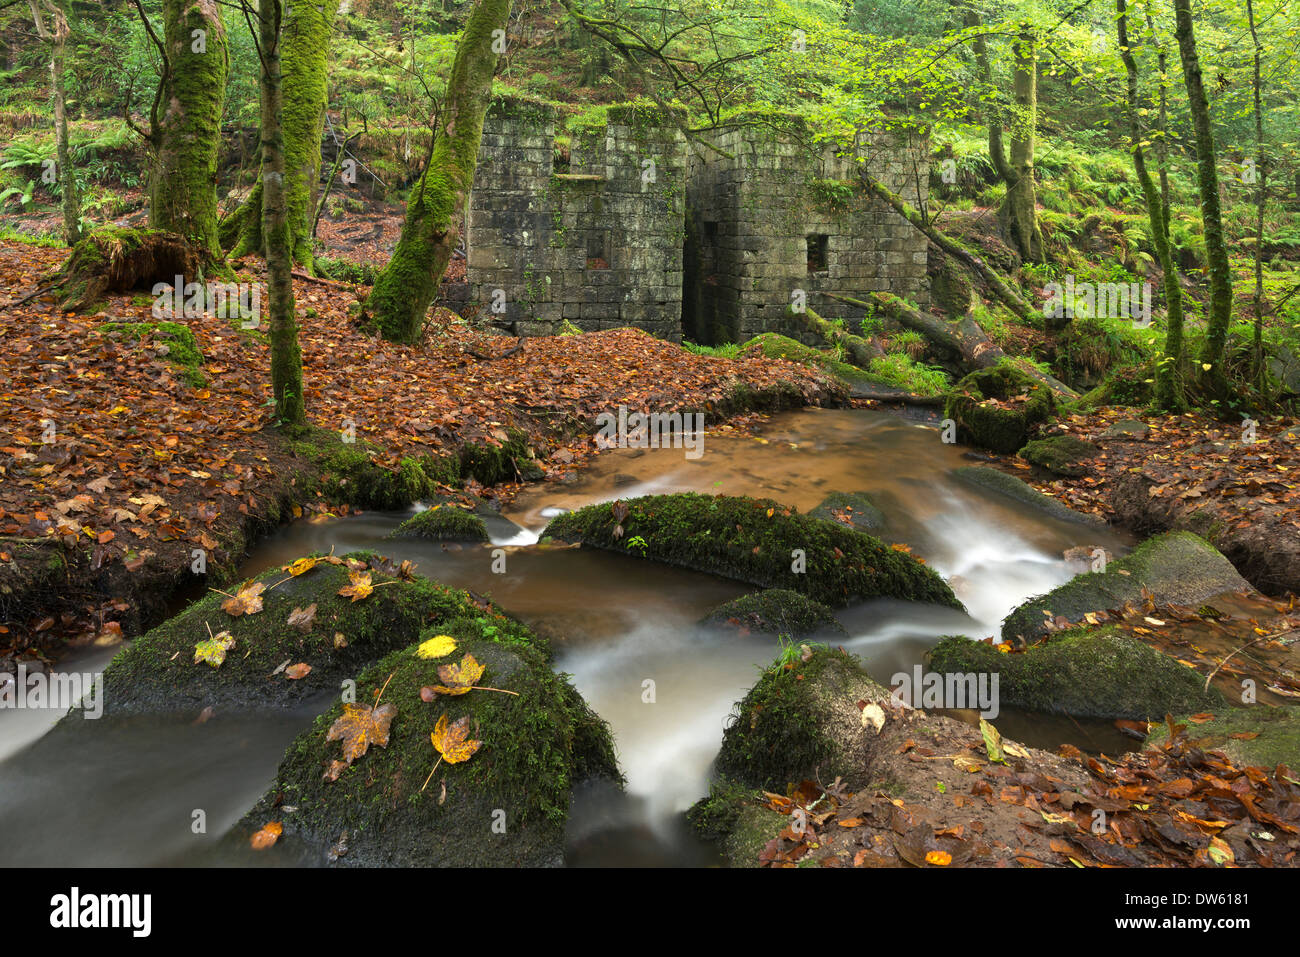 Remains of gunpowder mills at Kennall Vale Nature Reserve in Ponsanooth near Falmouth, Cornwall, England. Autumn - Stock Image